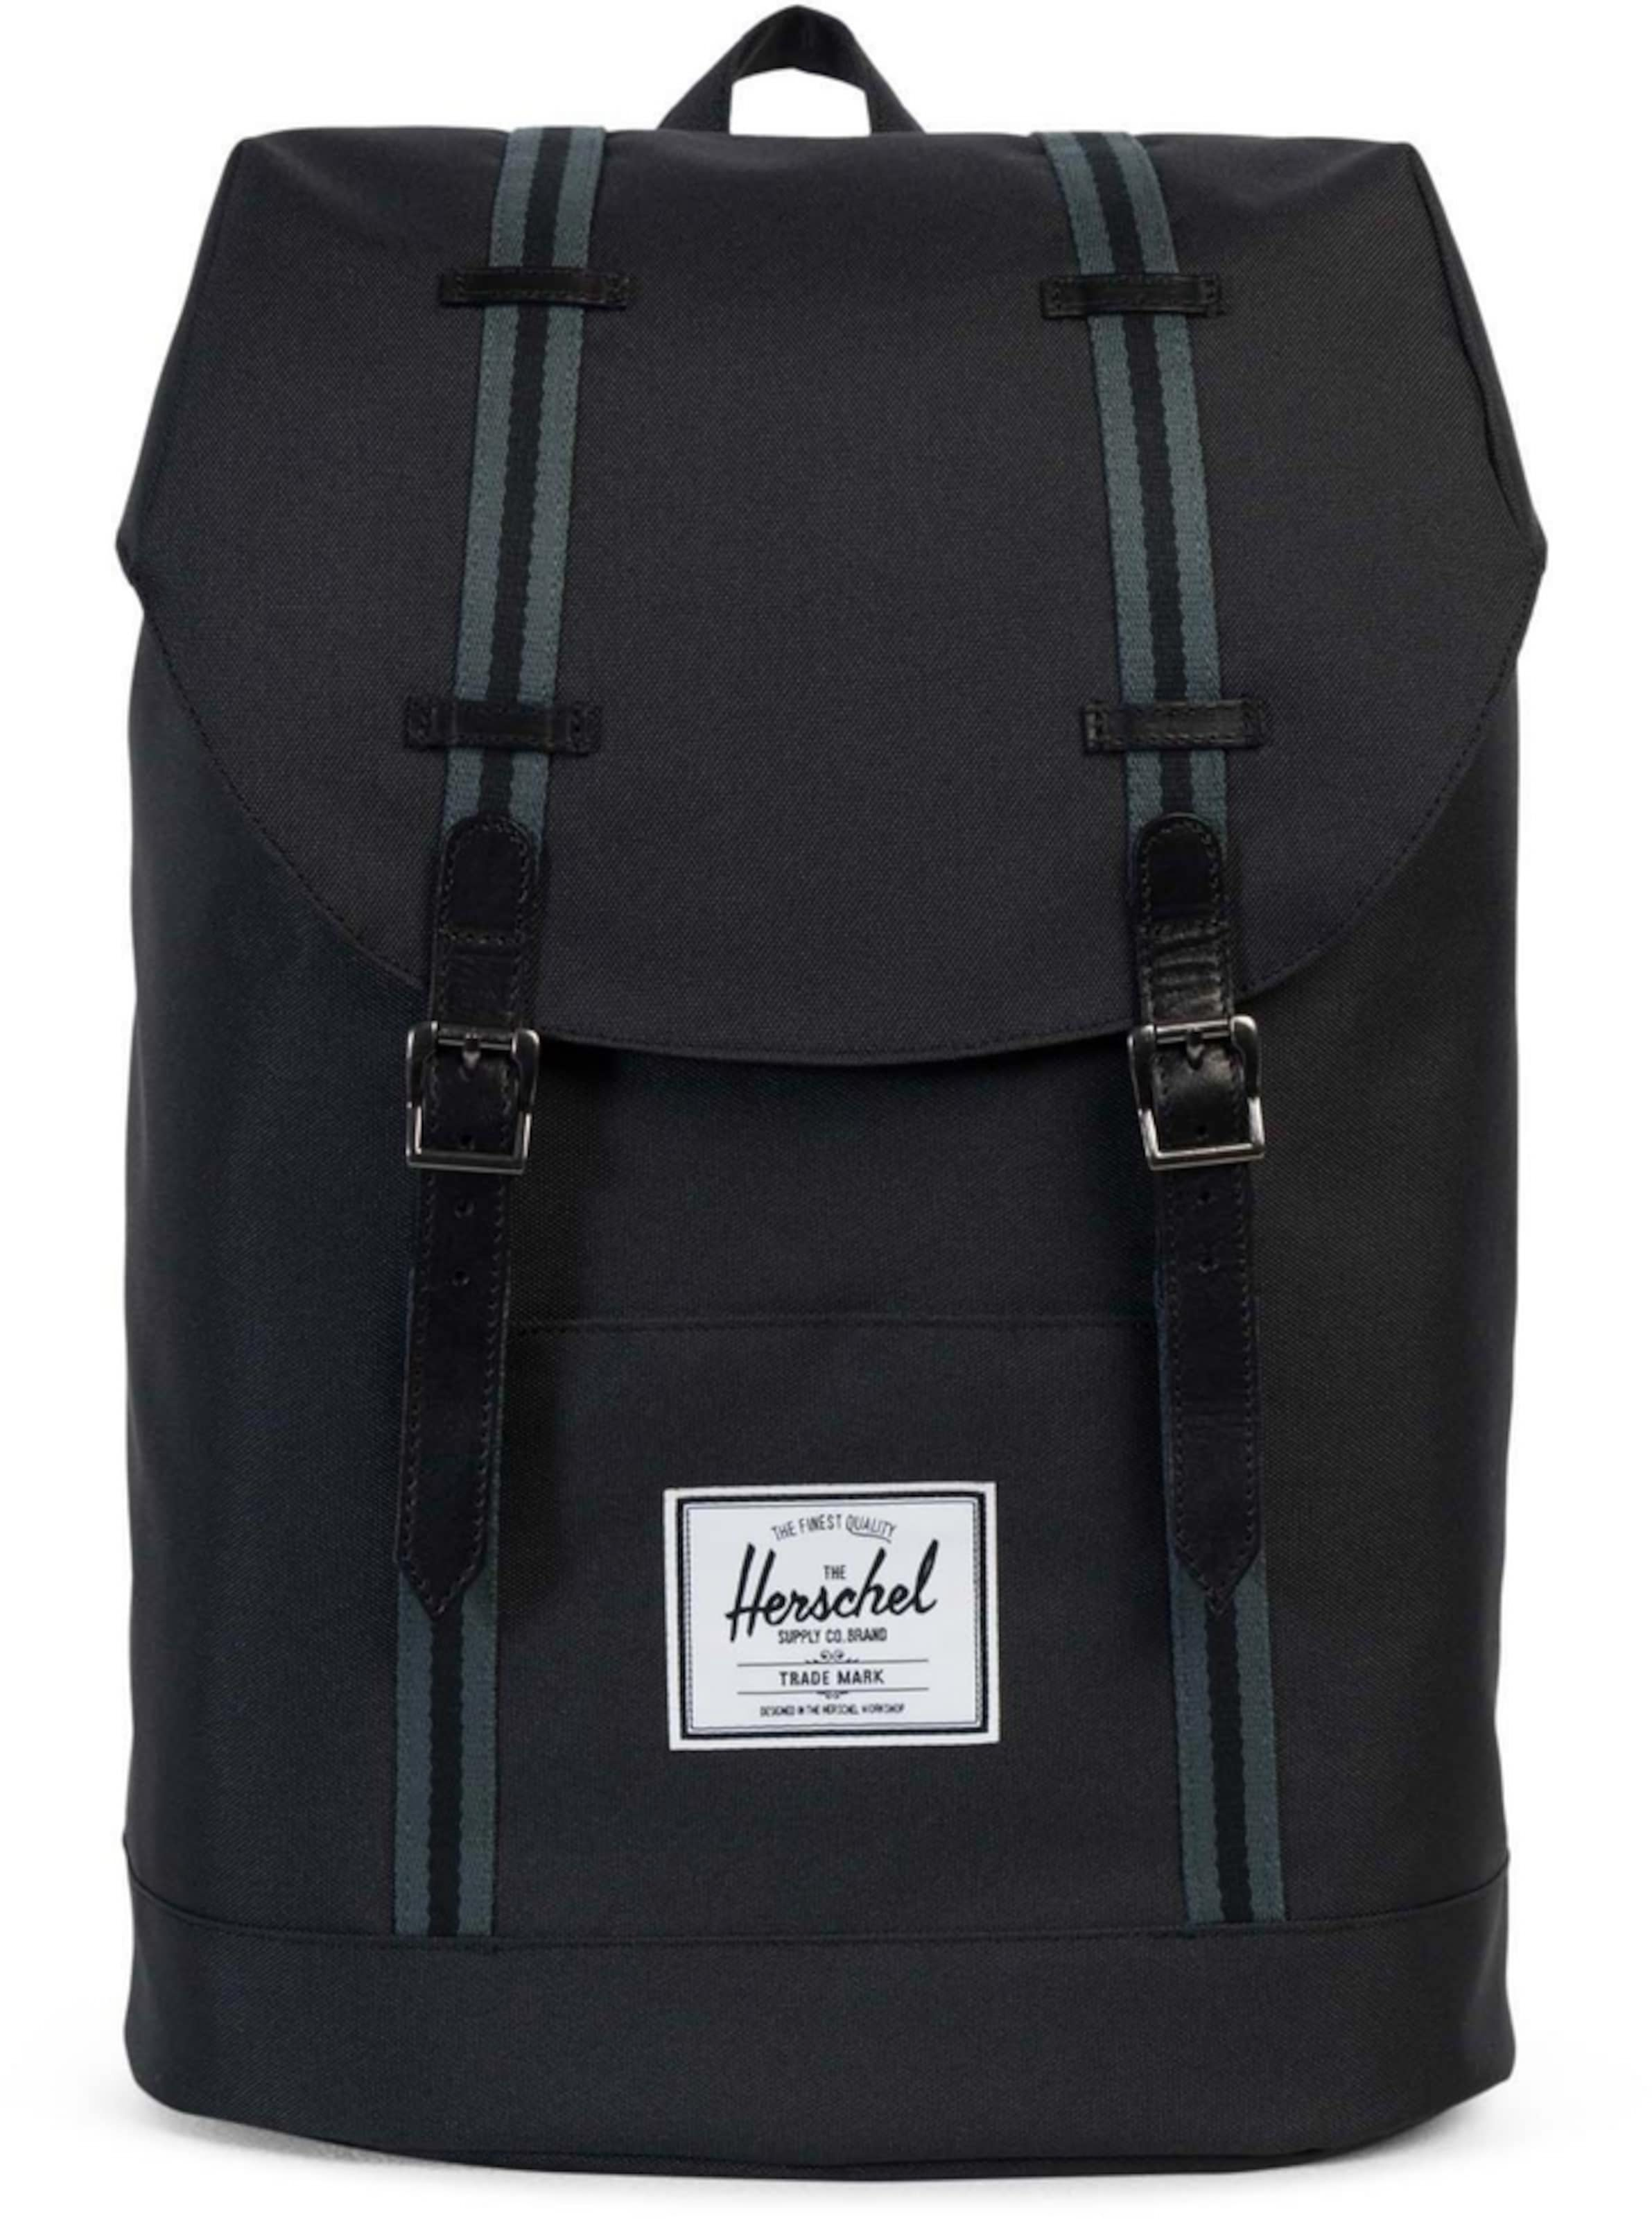 'Retreat' Herschel Herschel Herschel Daypack Daypack Daypack 'Retreat' Herschel Herschel 'Retreat' 'Retreat' Daypack Herschel Daypack 'Retreat' vYrvq6